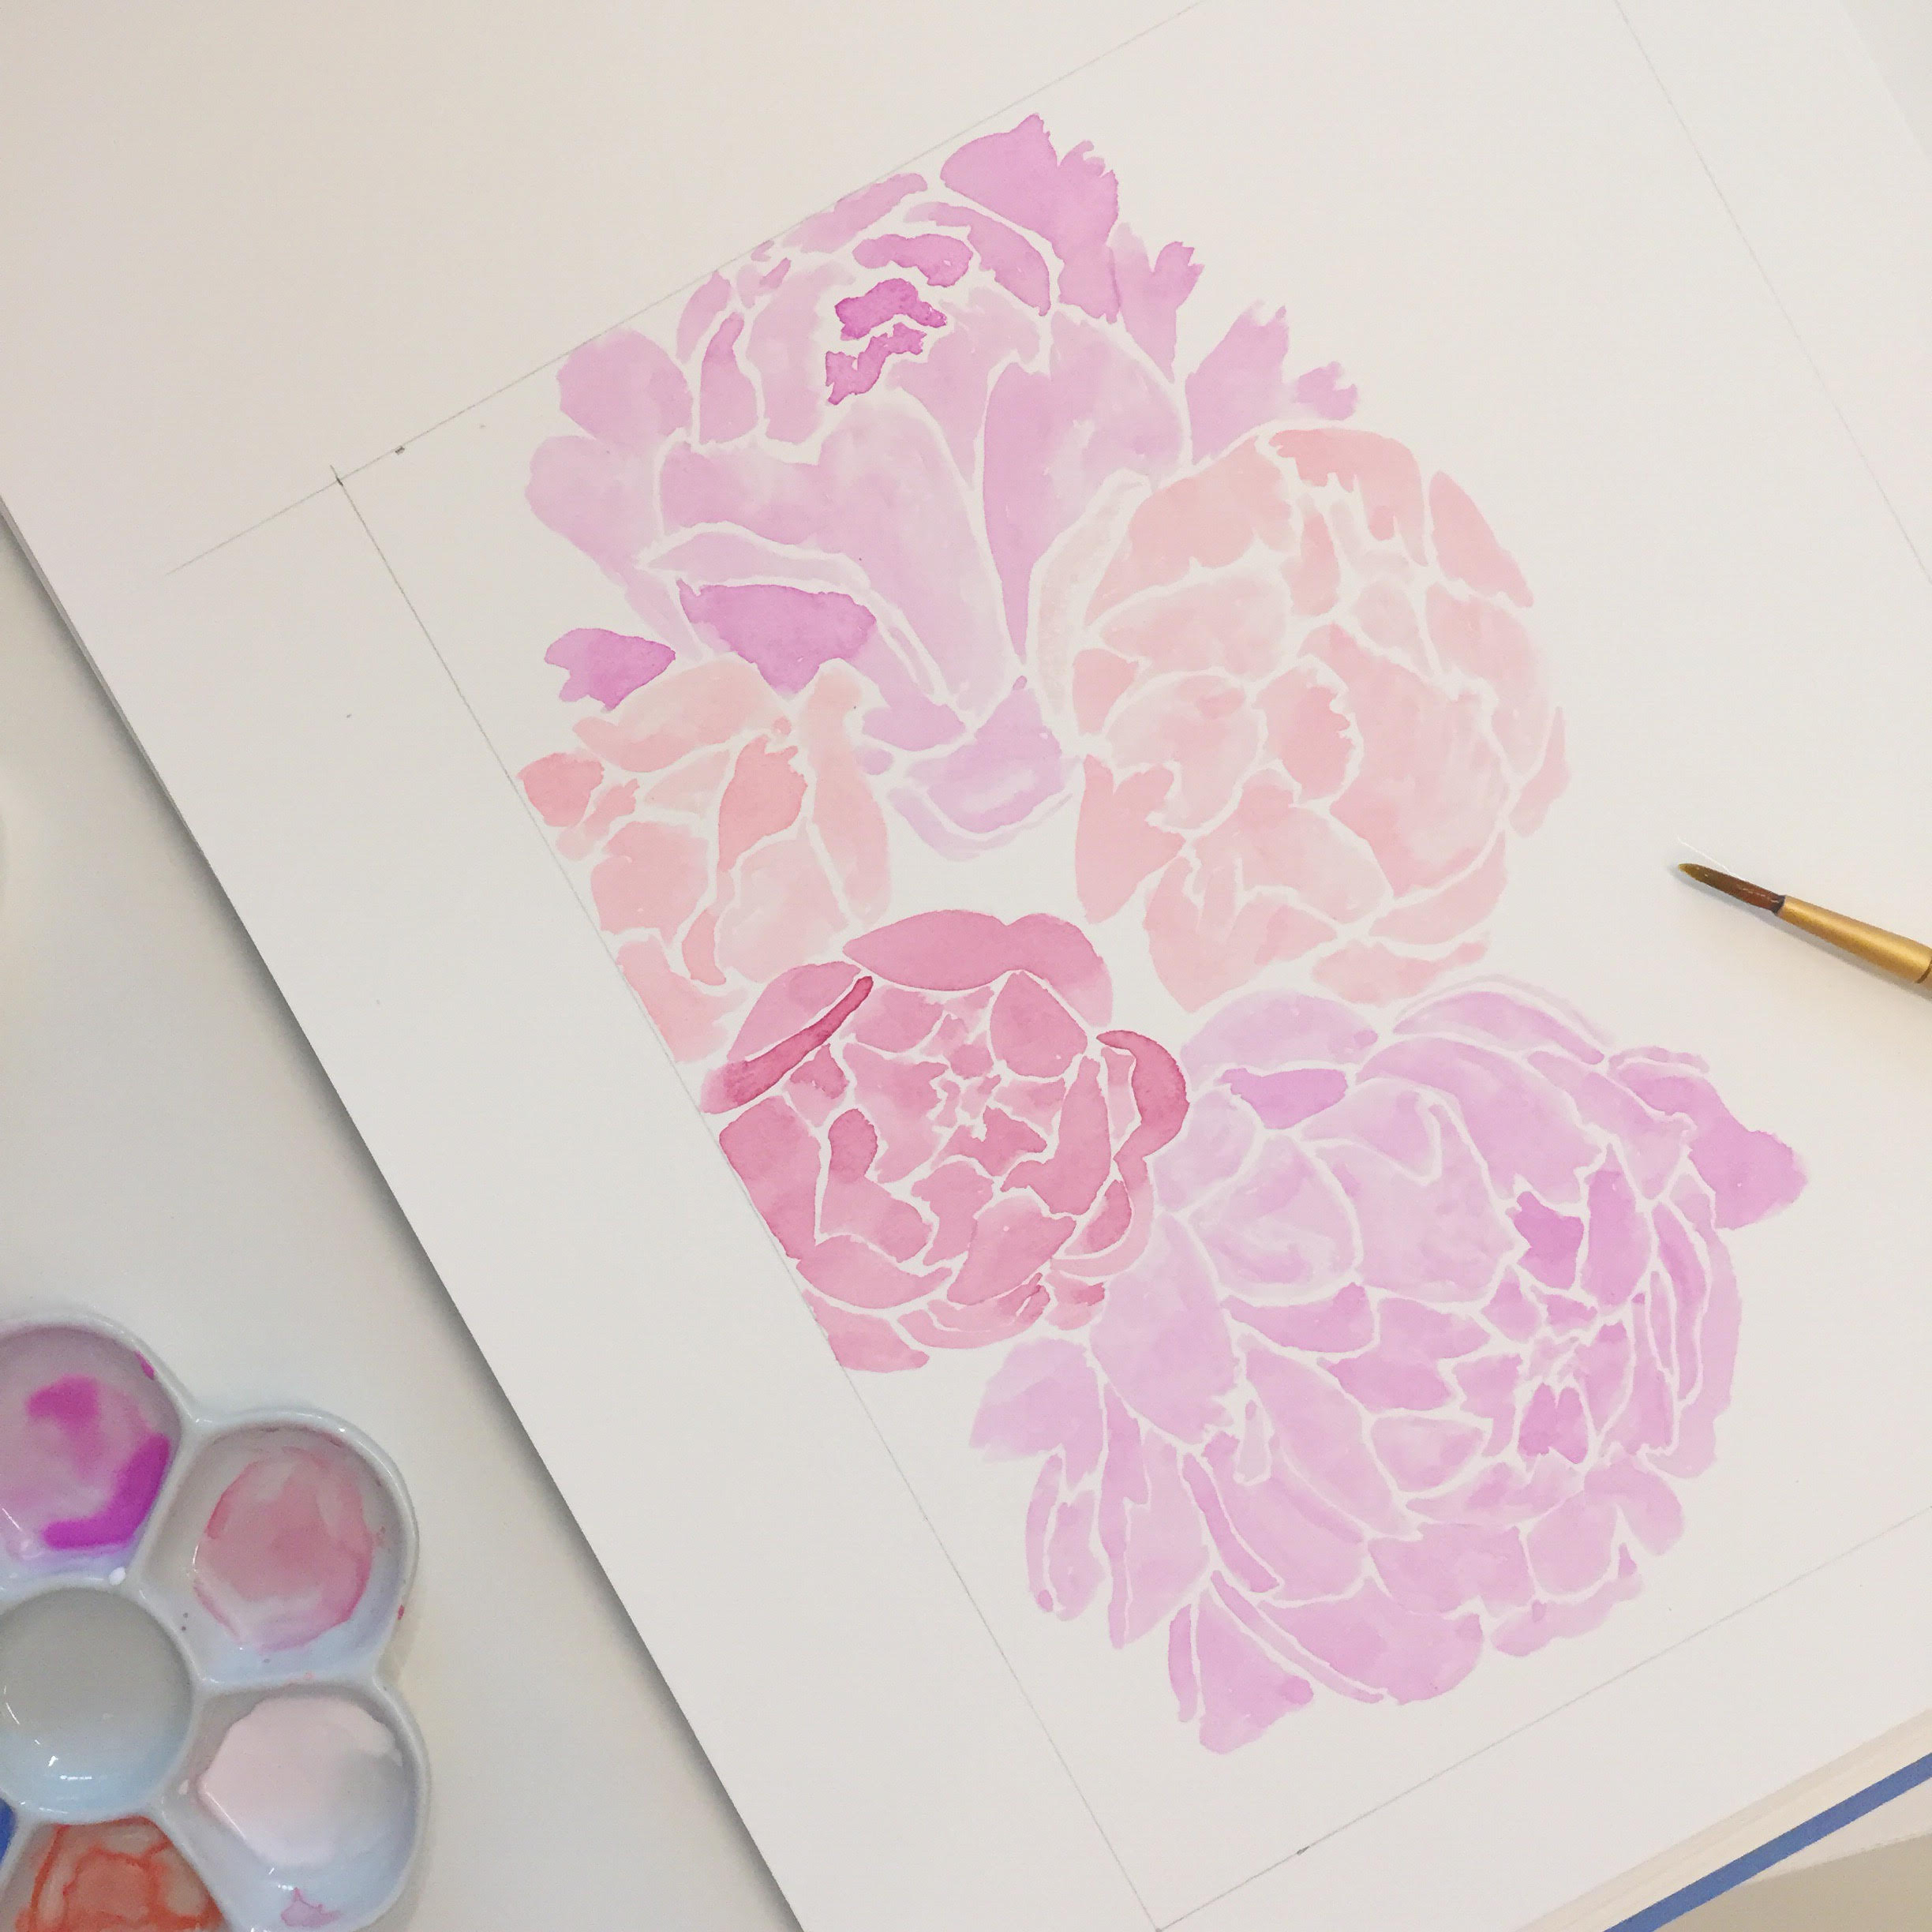 Sable and Gray Peony Painting